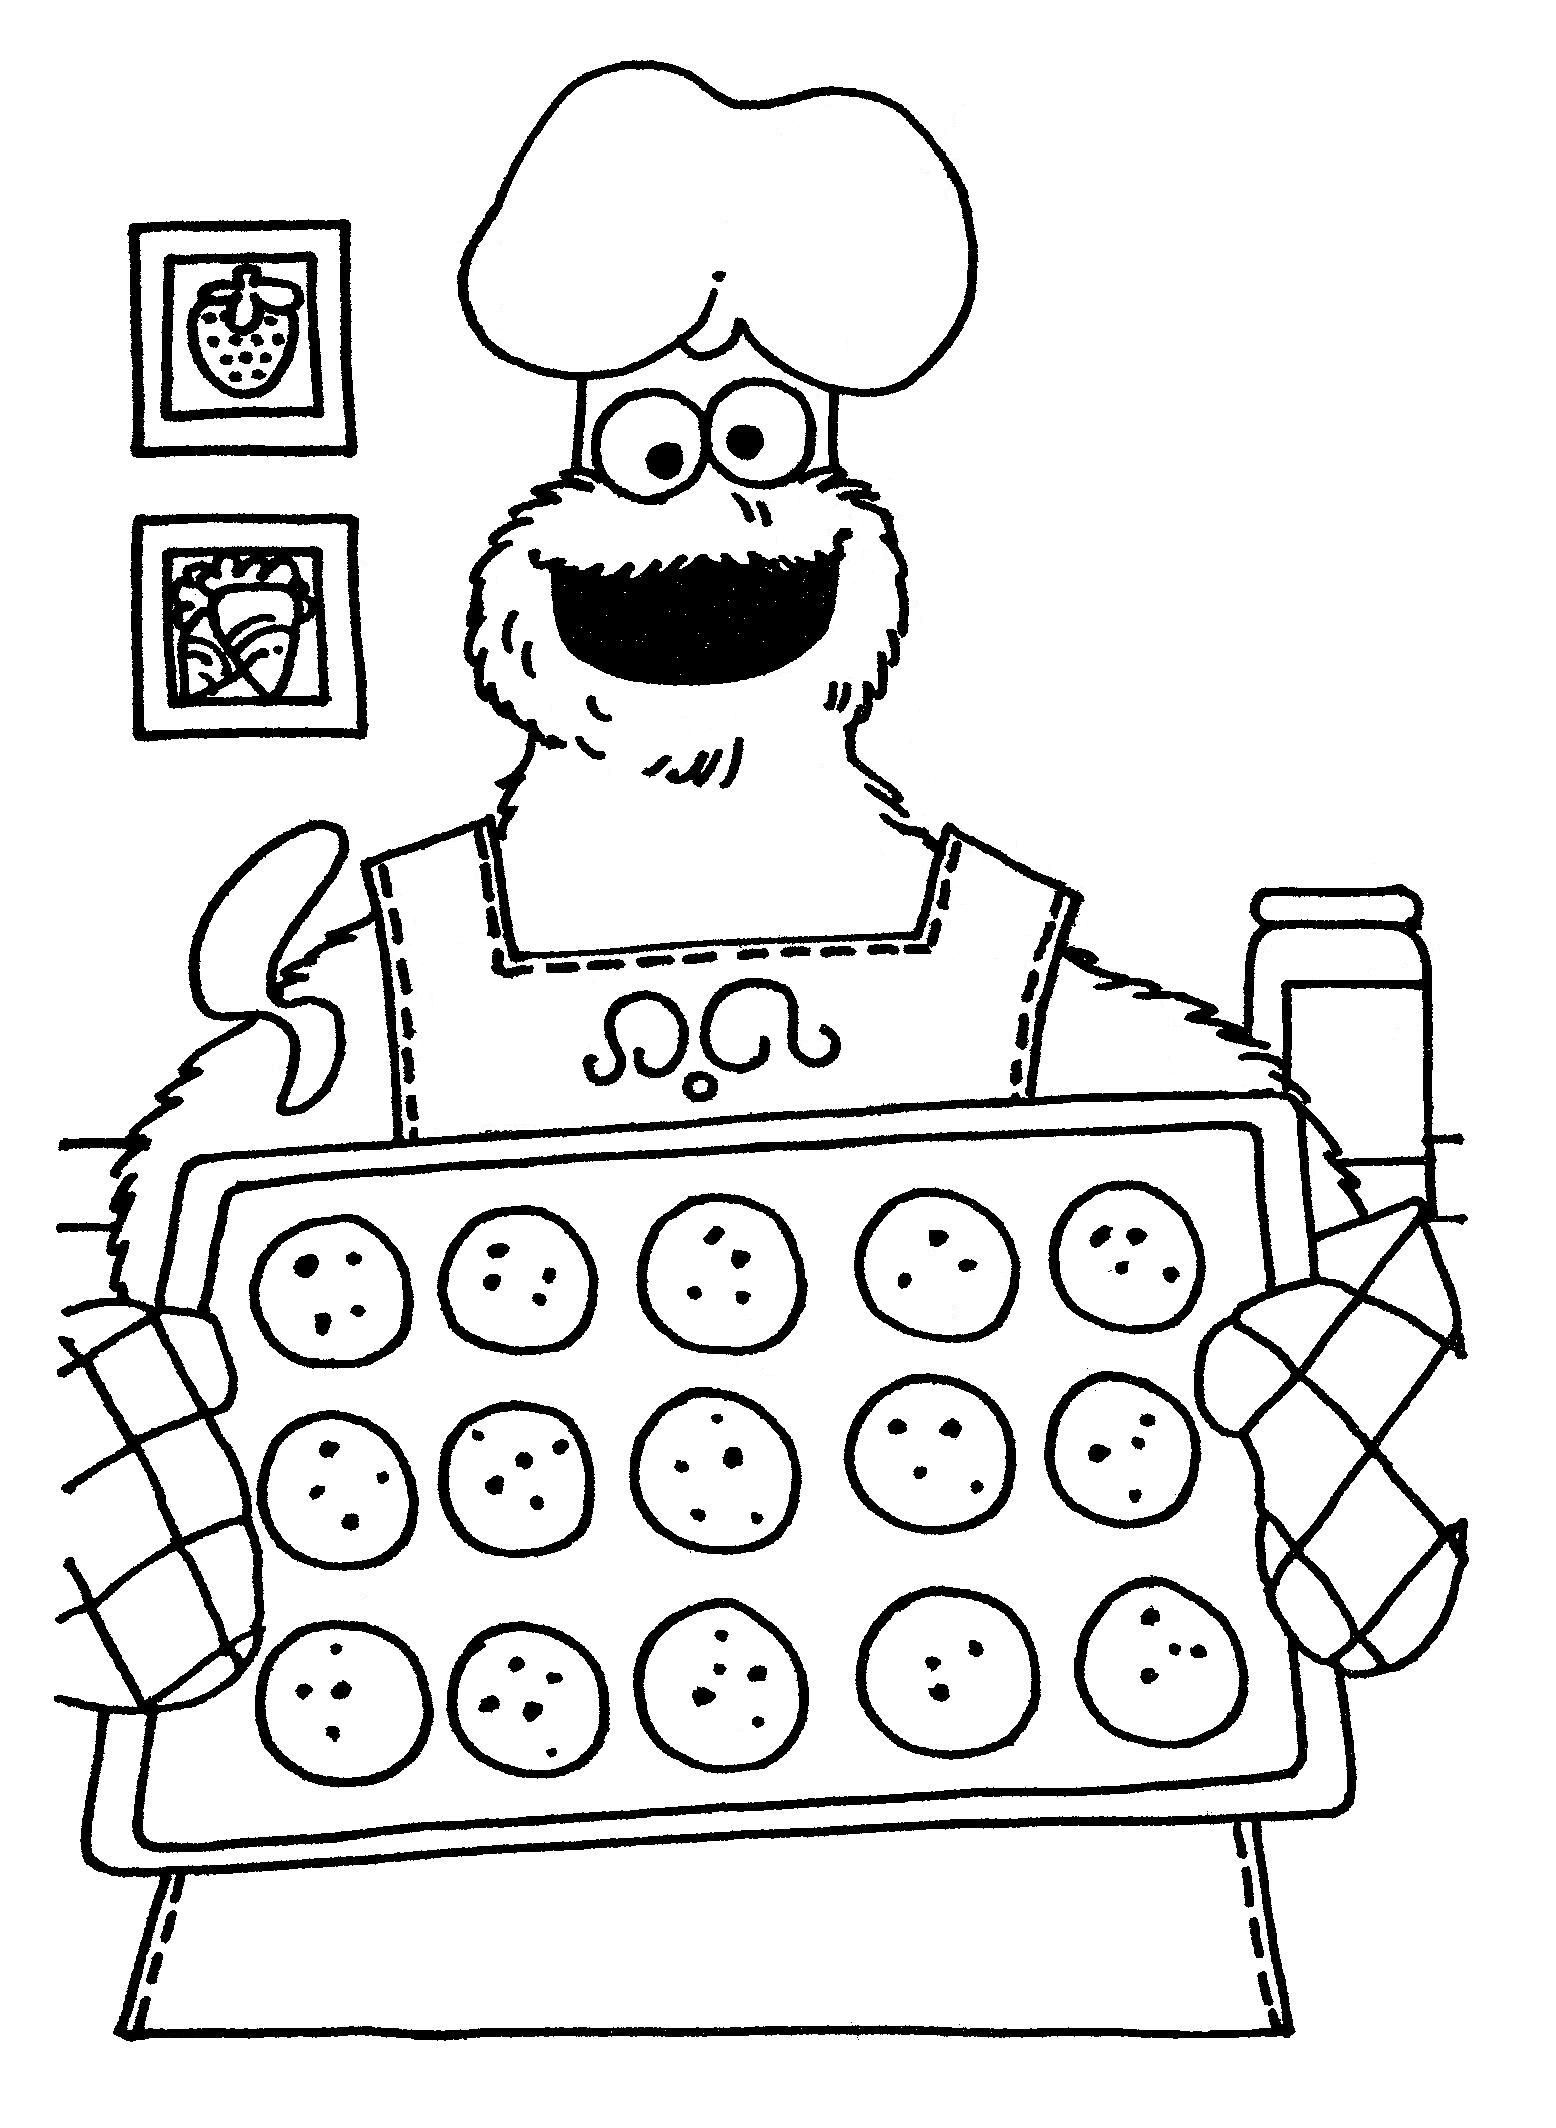 baking coloring pages Cookie Monster / Baking (Coloring Pages) | Coloring Pages   Sesame  baking coloring pages